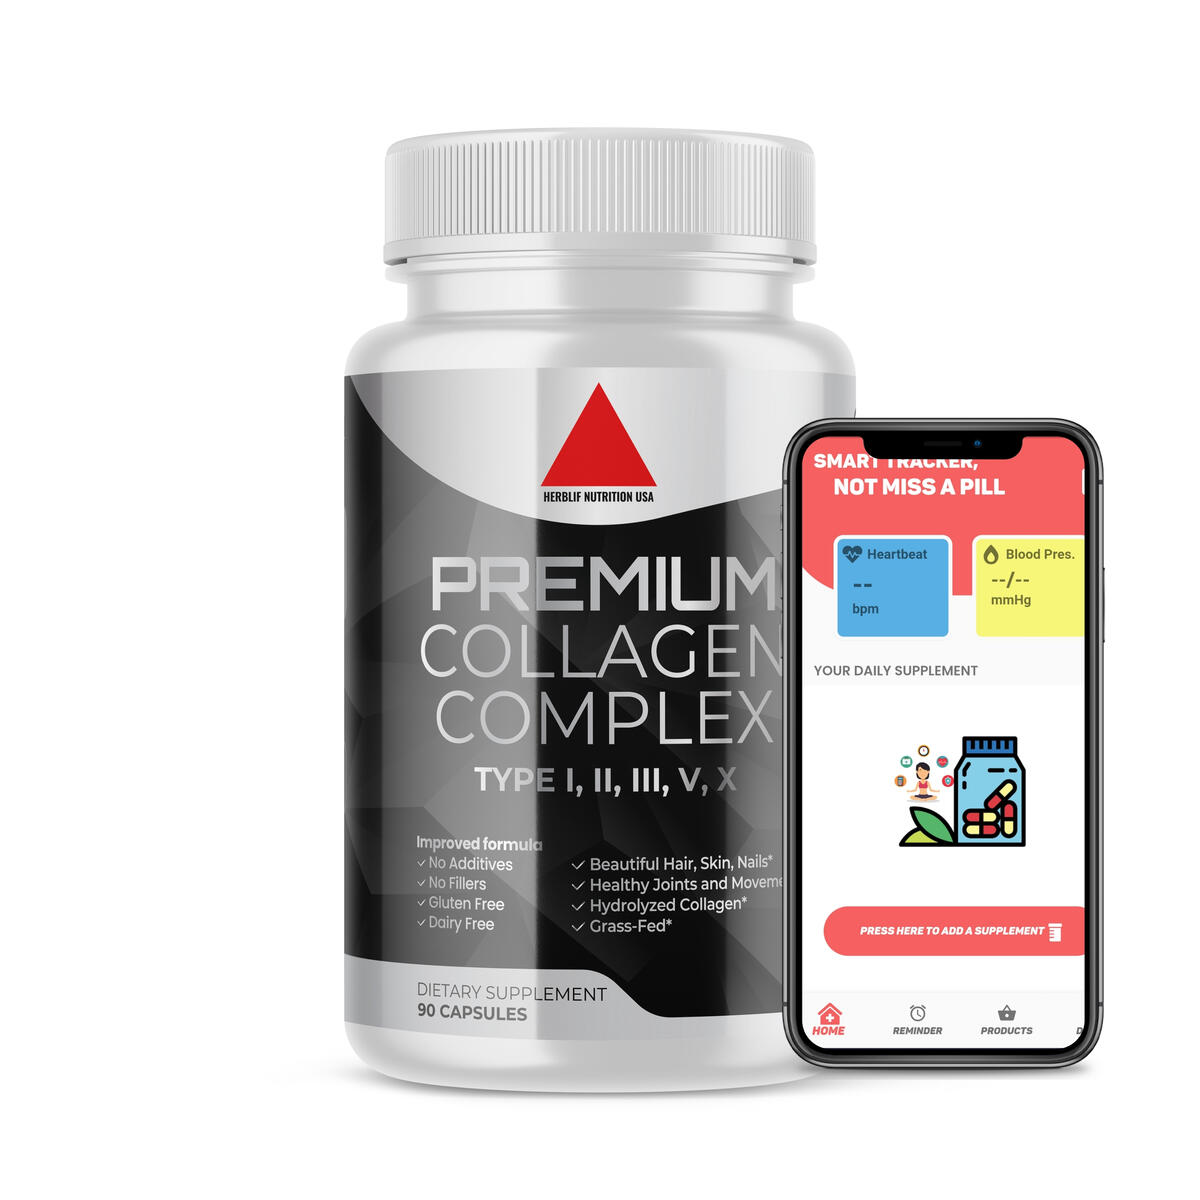 Multi Collagen Pills (Types I, II, III, V, X) - Premium Hydrolyzed Collagen Peptides Protein Supplement - Supports Hair, Skin, Nails, Joints, Aging - Non-GMO - 90 Capsules